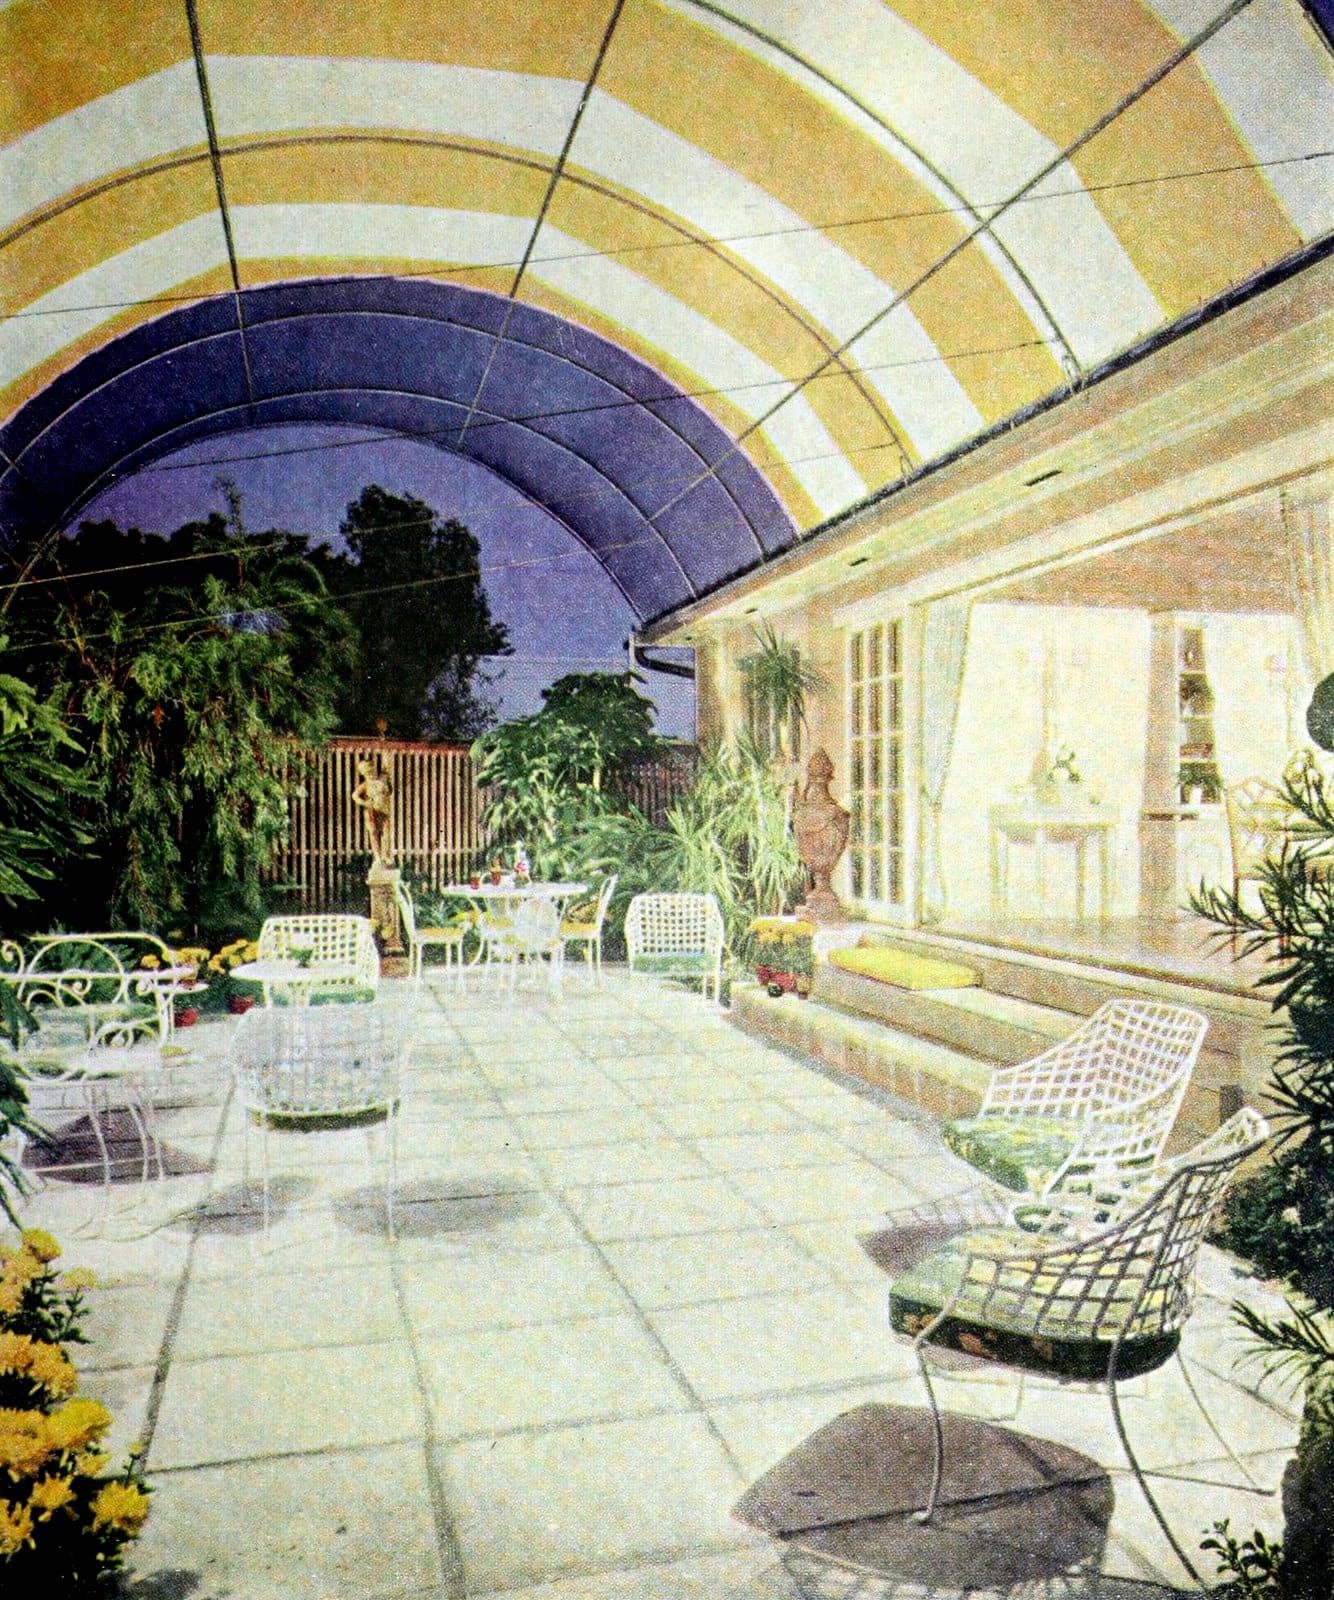 Large yellow and white canvas dome over the garden (1961)